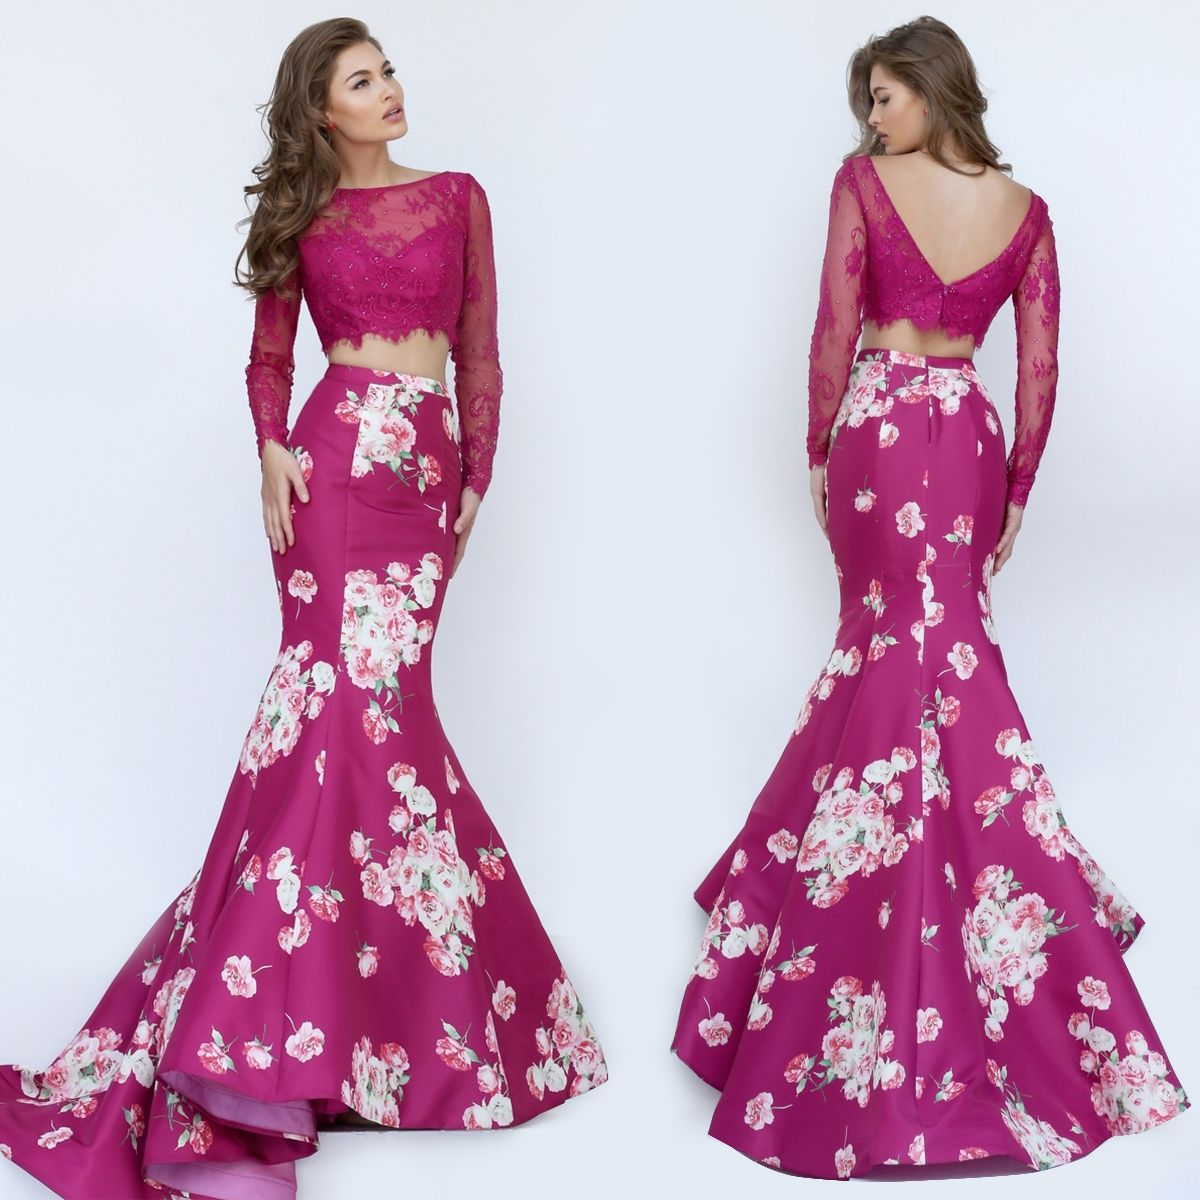 Two Piece Floral Print Prom Gown by Sherri Hill | Vestidos ...